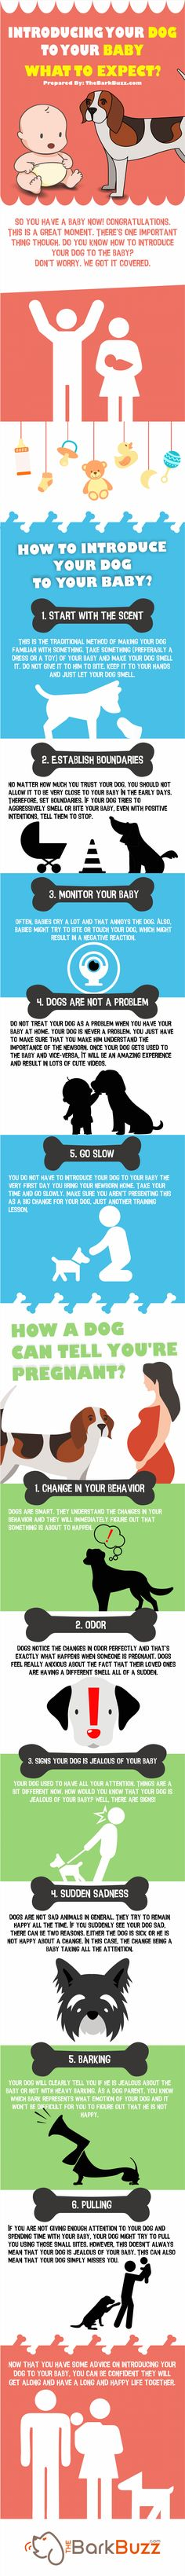 Infographic: Here's how to Introduce Your Dog To Your Baby and What to Expect. Visit Vanillapup.com for more posts like this.